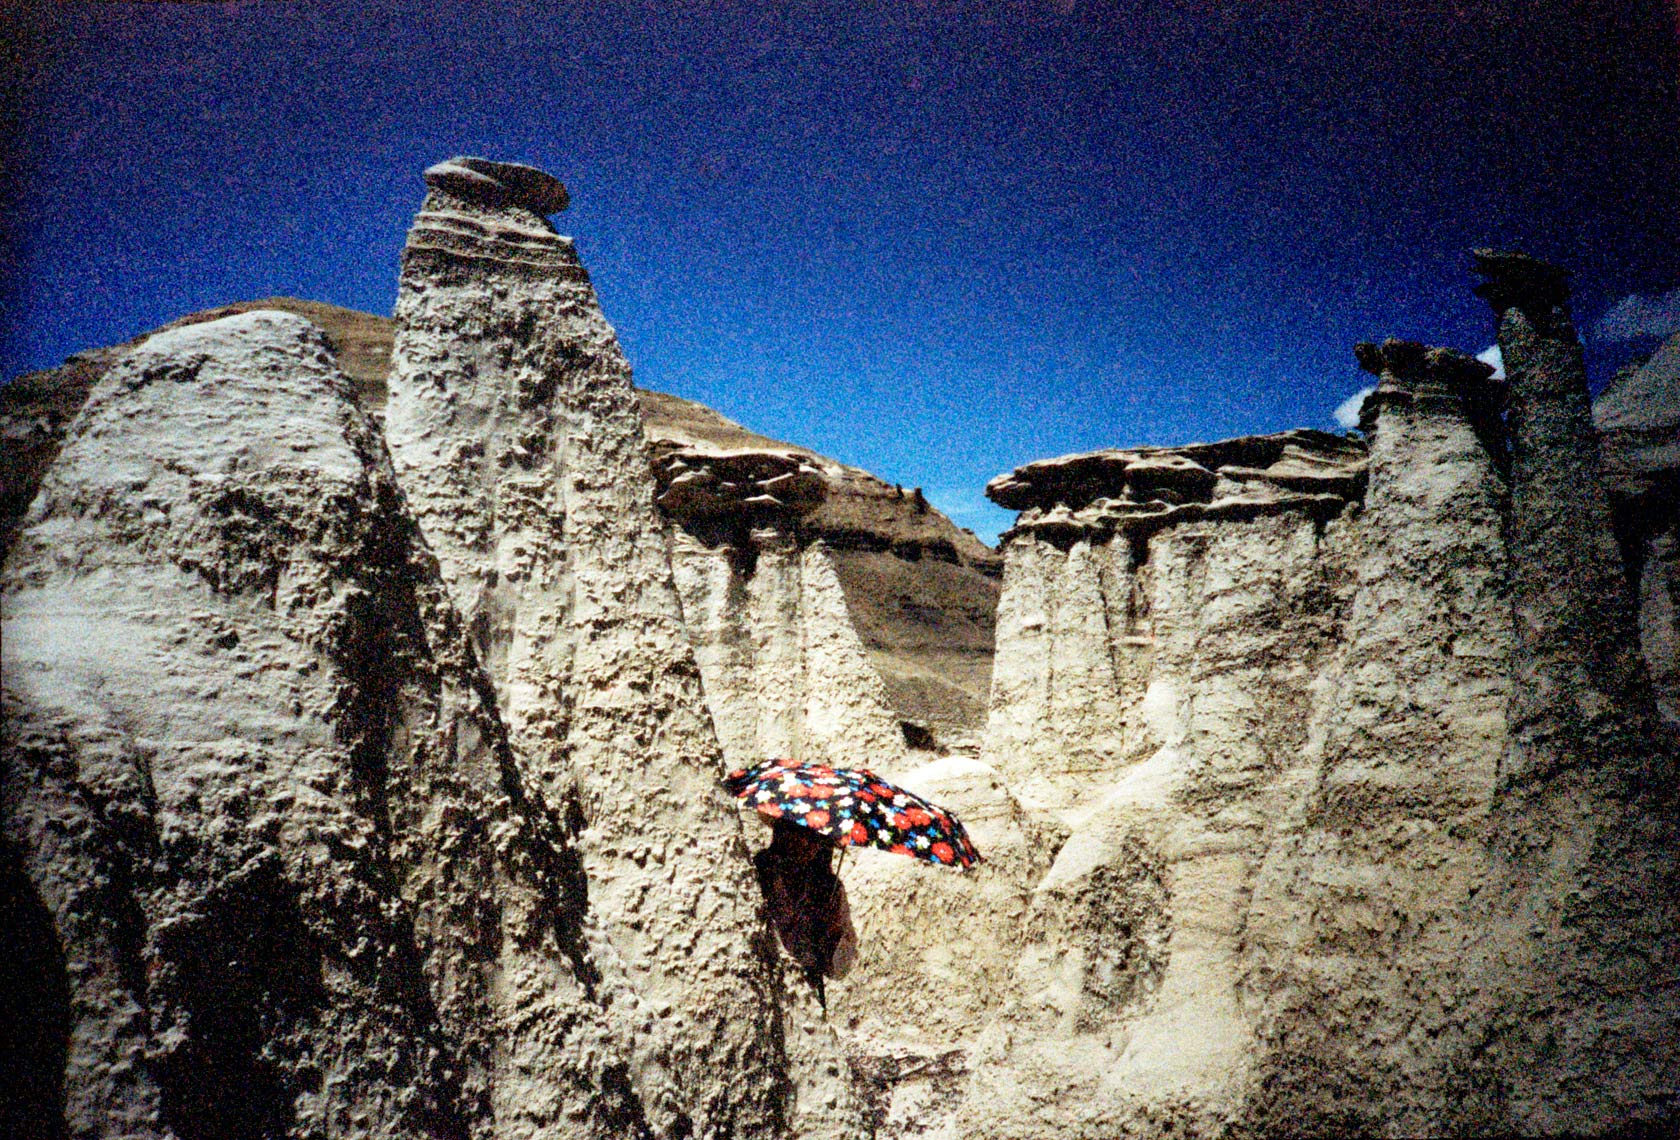 Bisti/De-Na-Zin Wilderness, NM, Badlands, Navajo,Webb Chappell travel photography